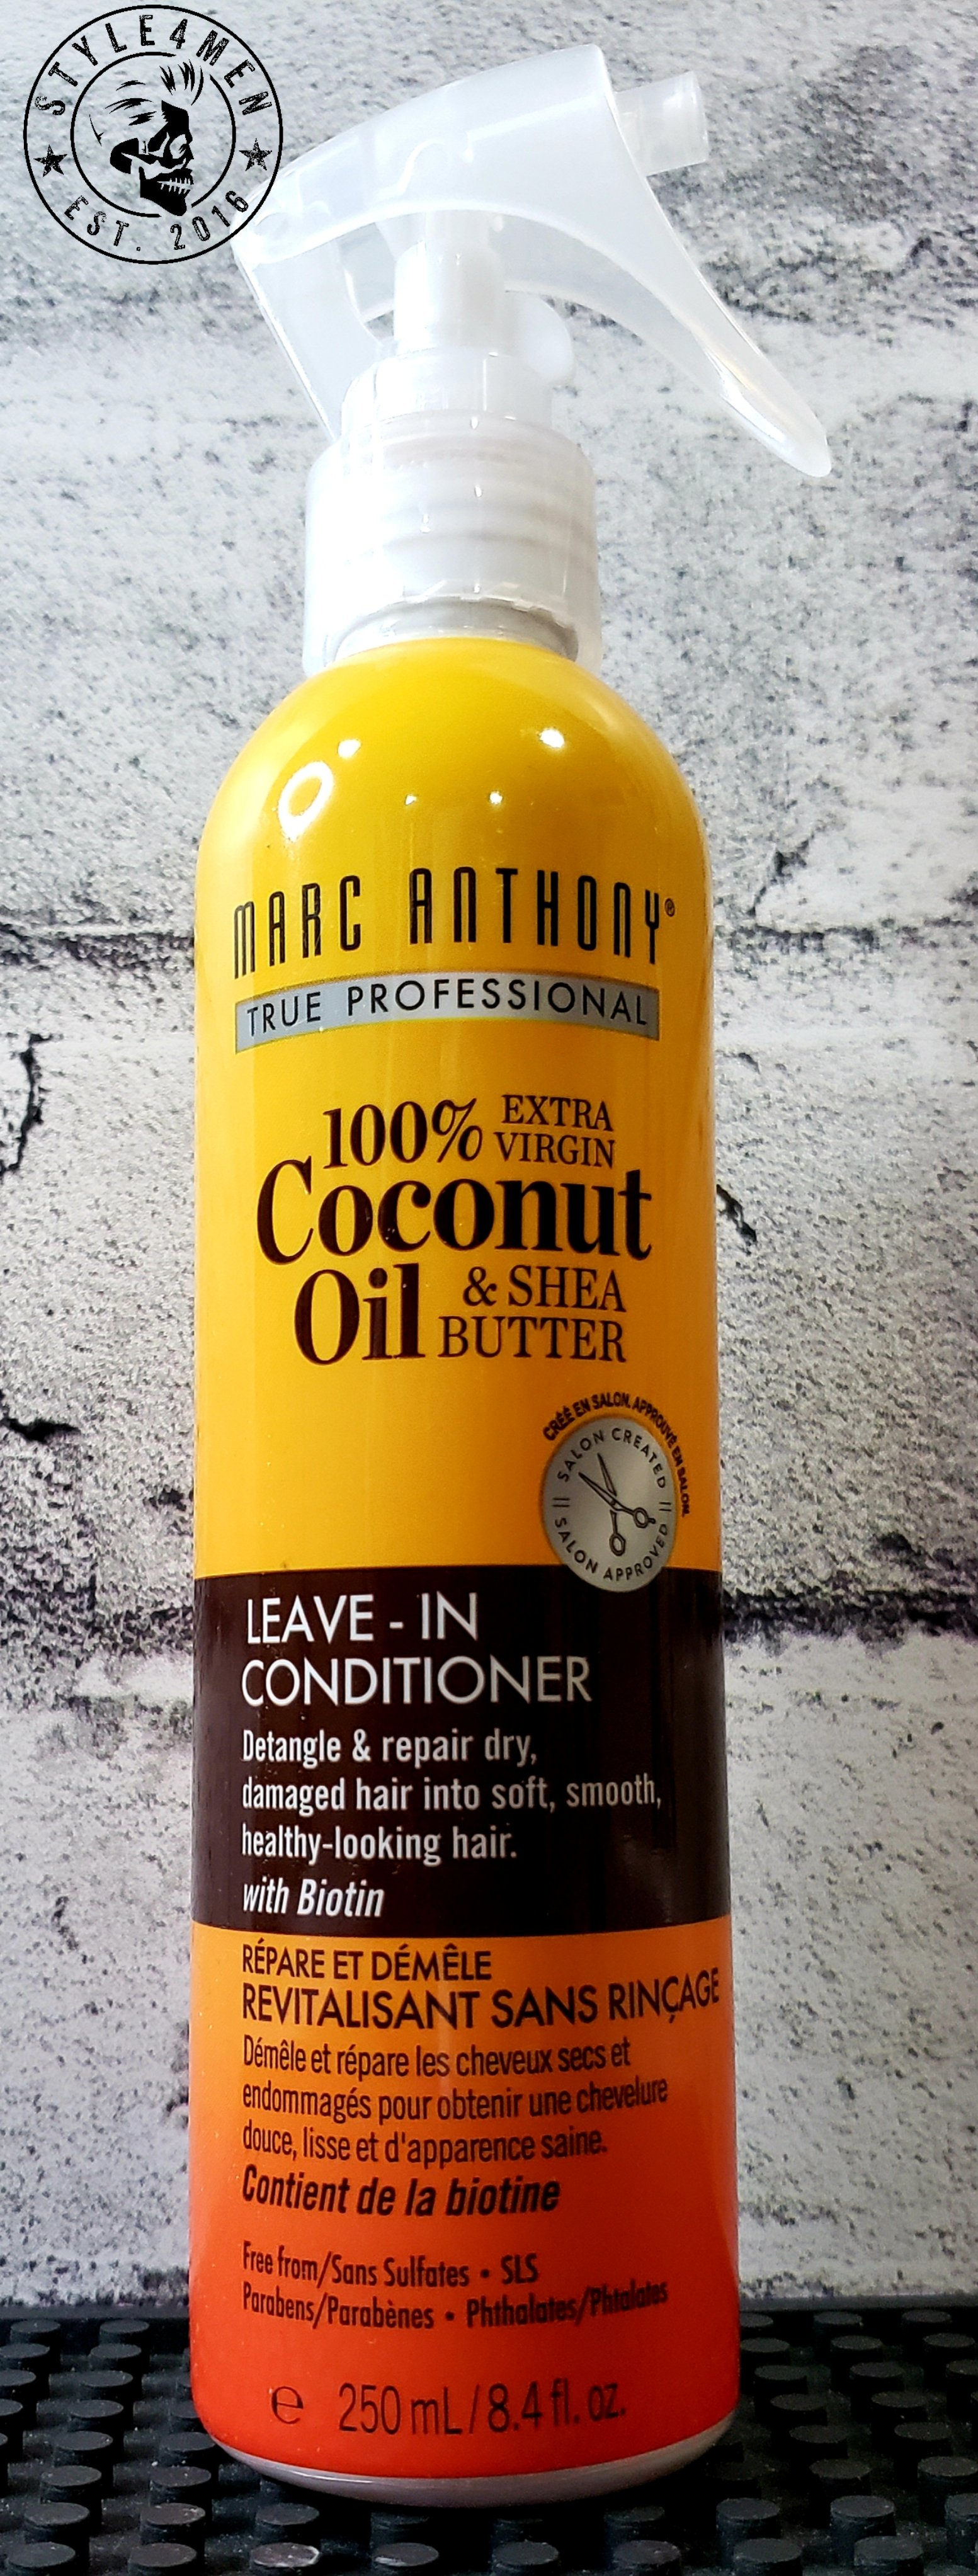 Marc Anthony Coconut Oil & Shea Butter